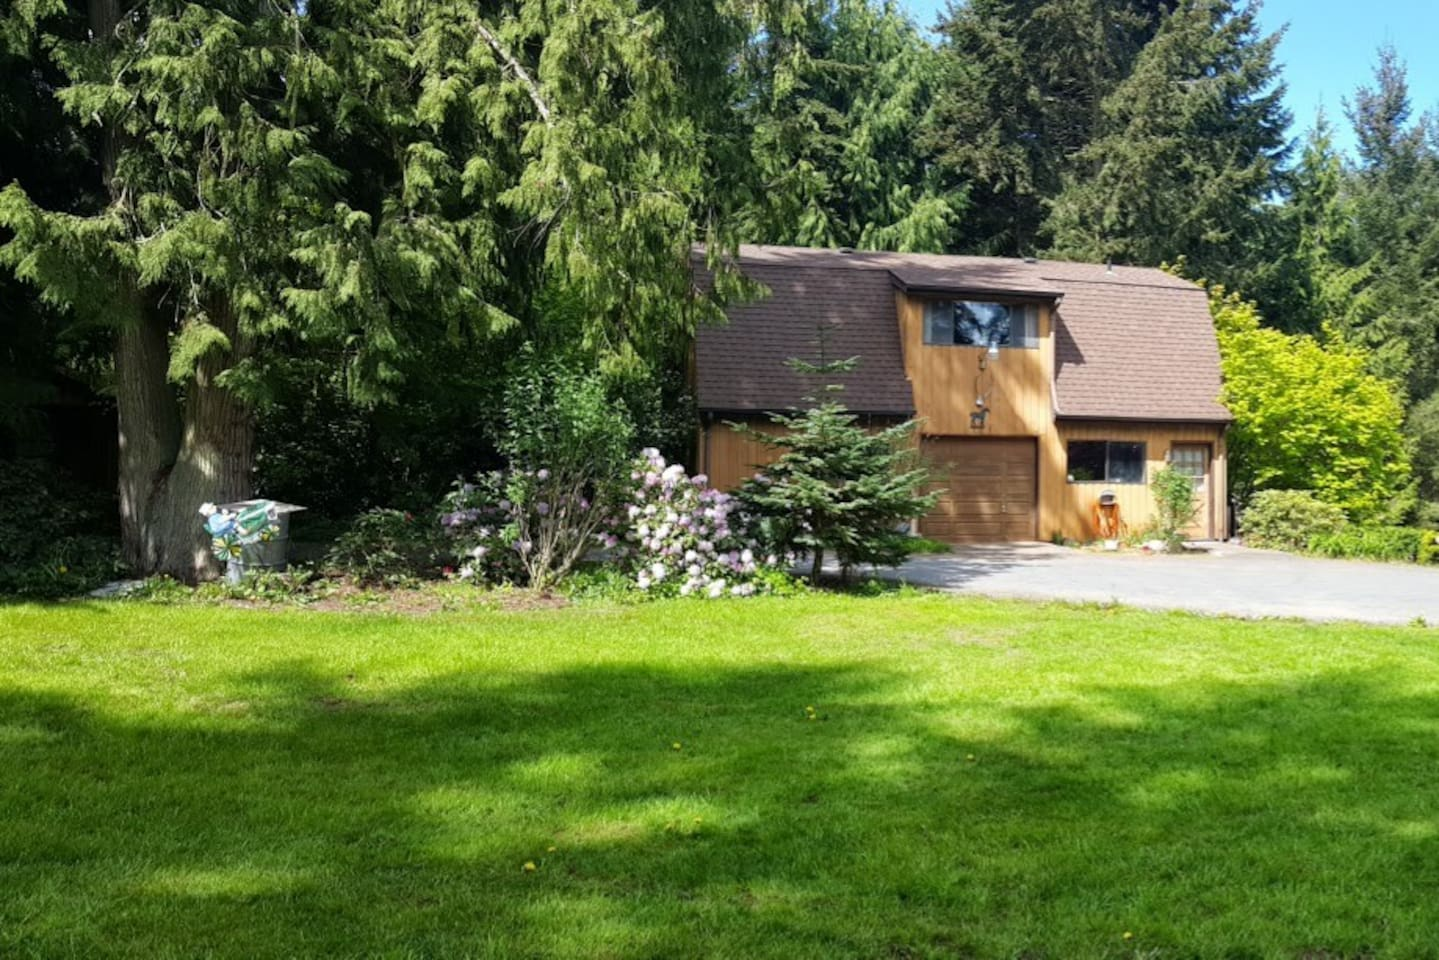 The Country Loft is located on a small, family run 5 acre farm in beautiful Sequim, WA.  The owners live in the main house on the property and are available to answer questions or provide assistance.